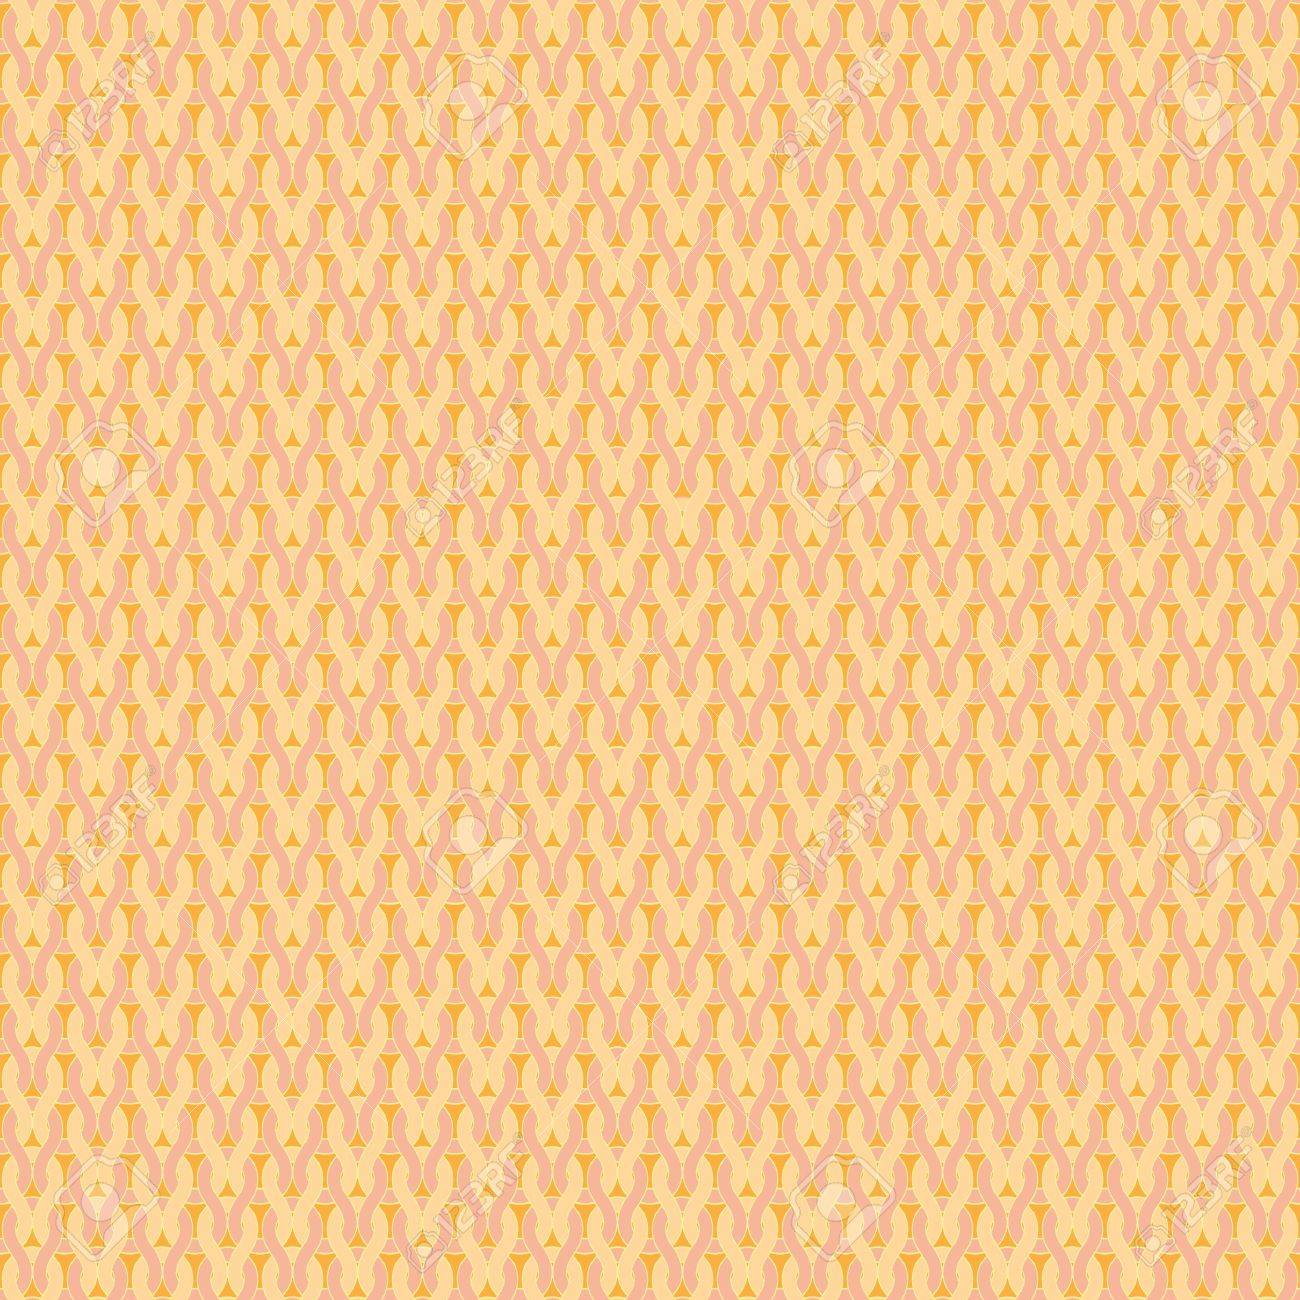 Seamless Boucle Knitted Pattern Royalty Free Cliparts, Vectors, And ...